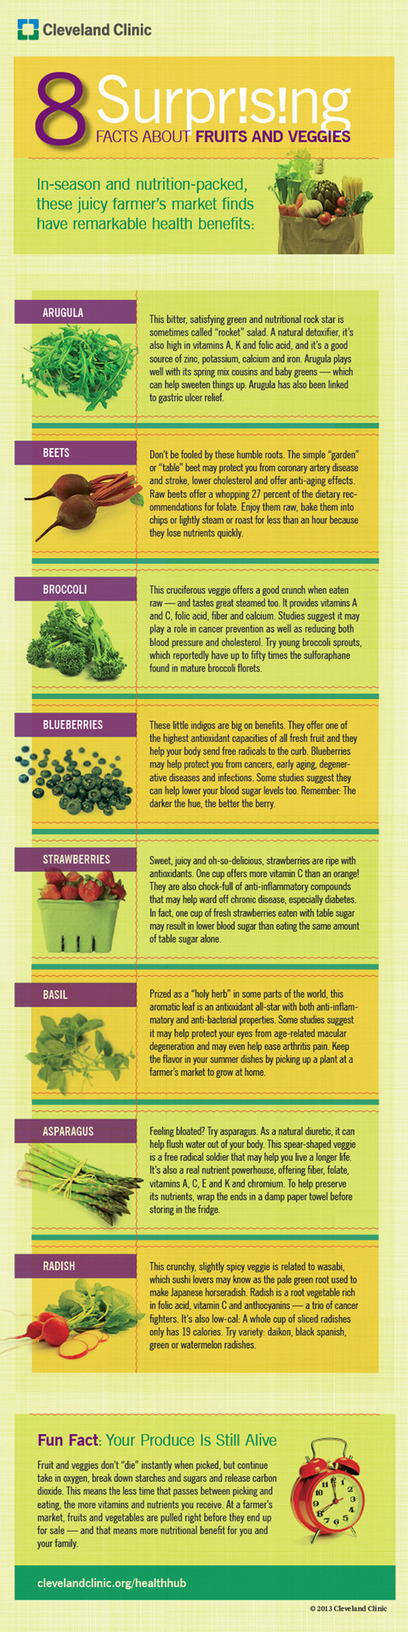 8 Surprising Facts About Fruits And Veggies Infographic | Healthy Whole Foods | Scoop.it